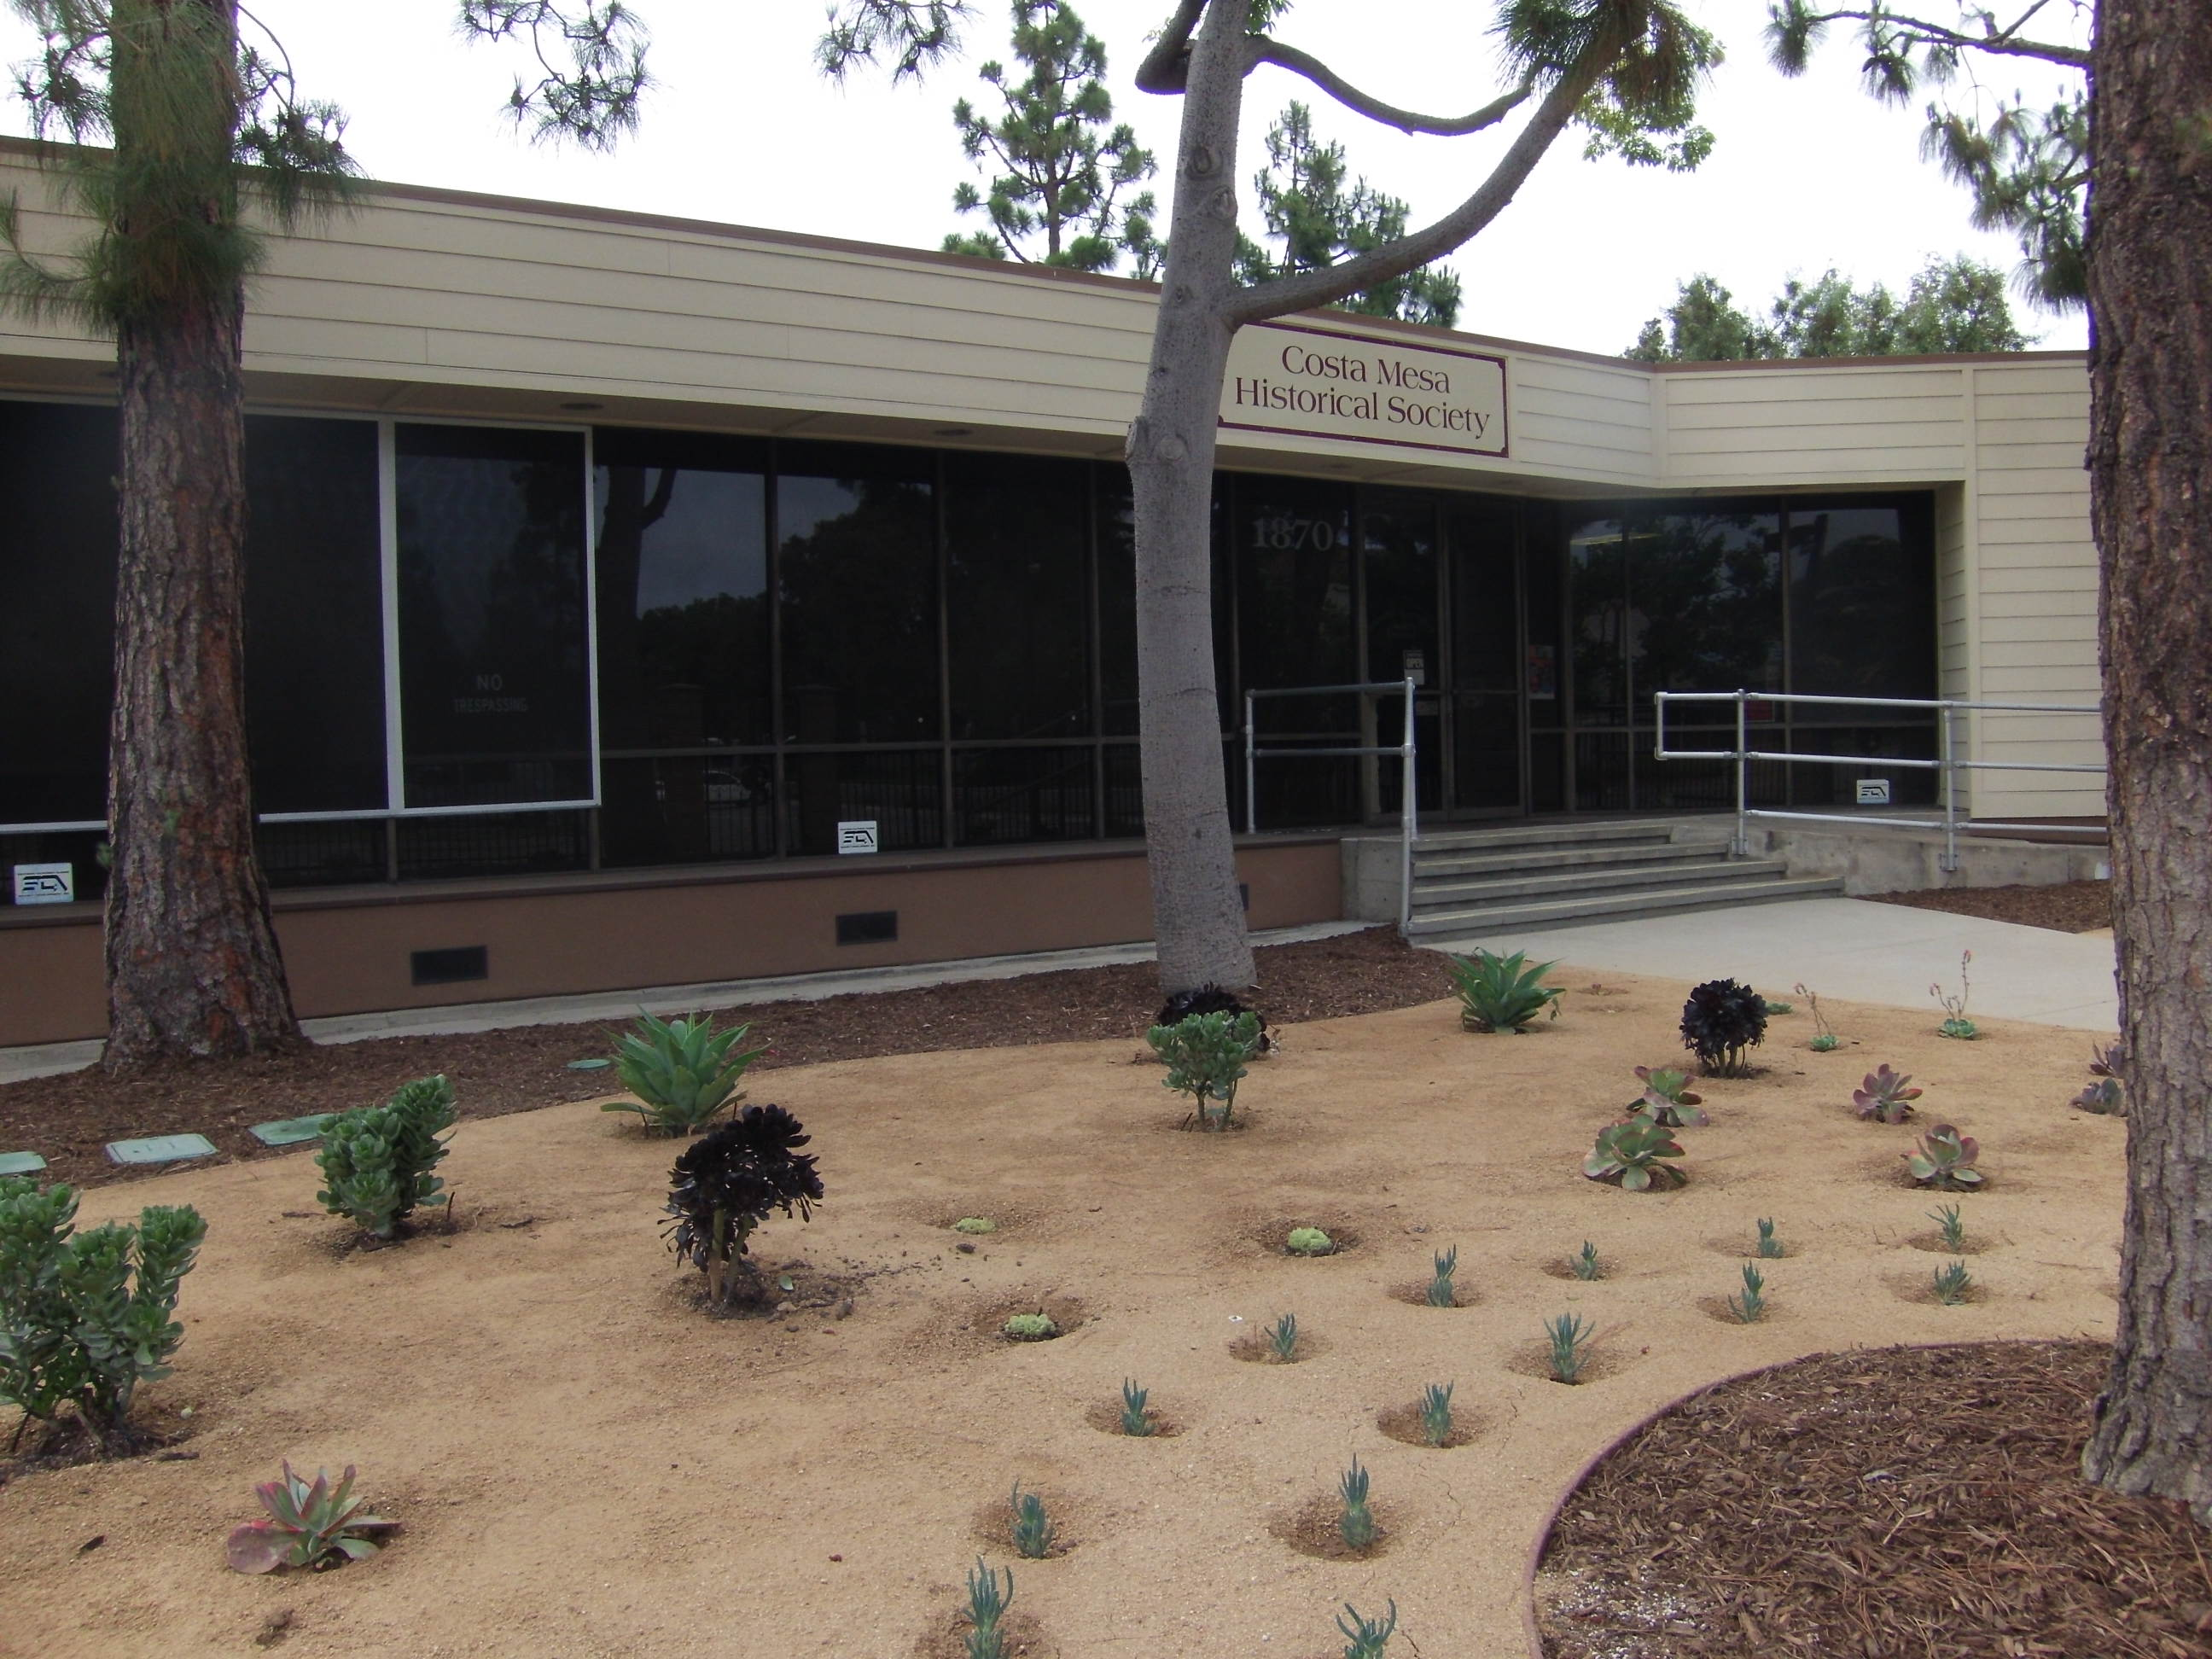 The museum and archive is located near Costa Mesa's downtown library-a convenient location for those interested in genealogical research or learning more about the region's history.